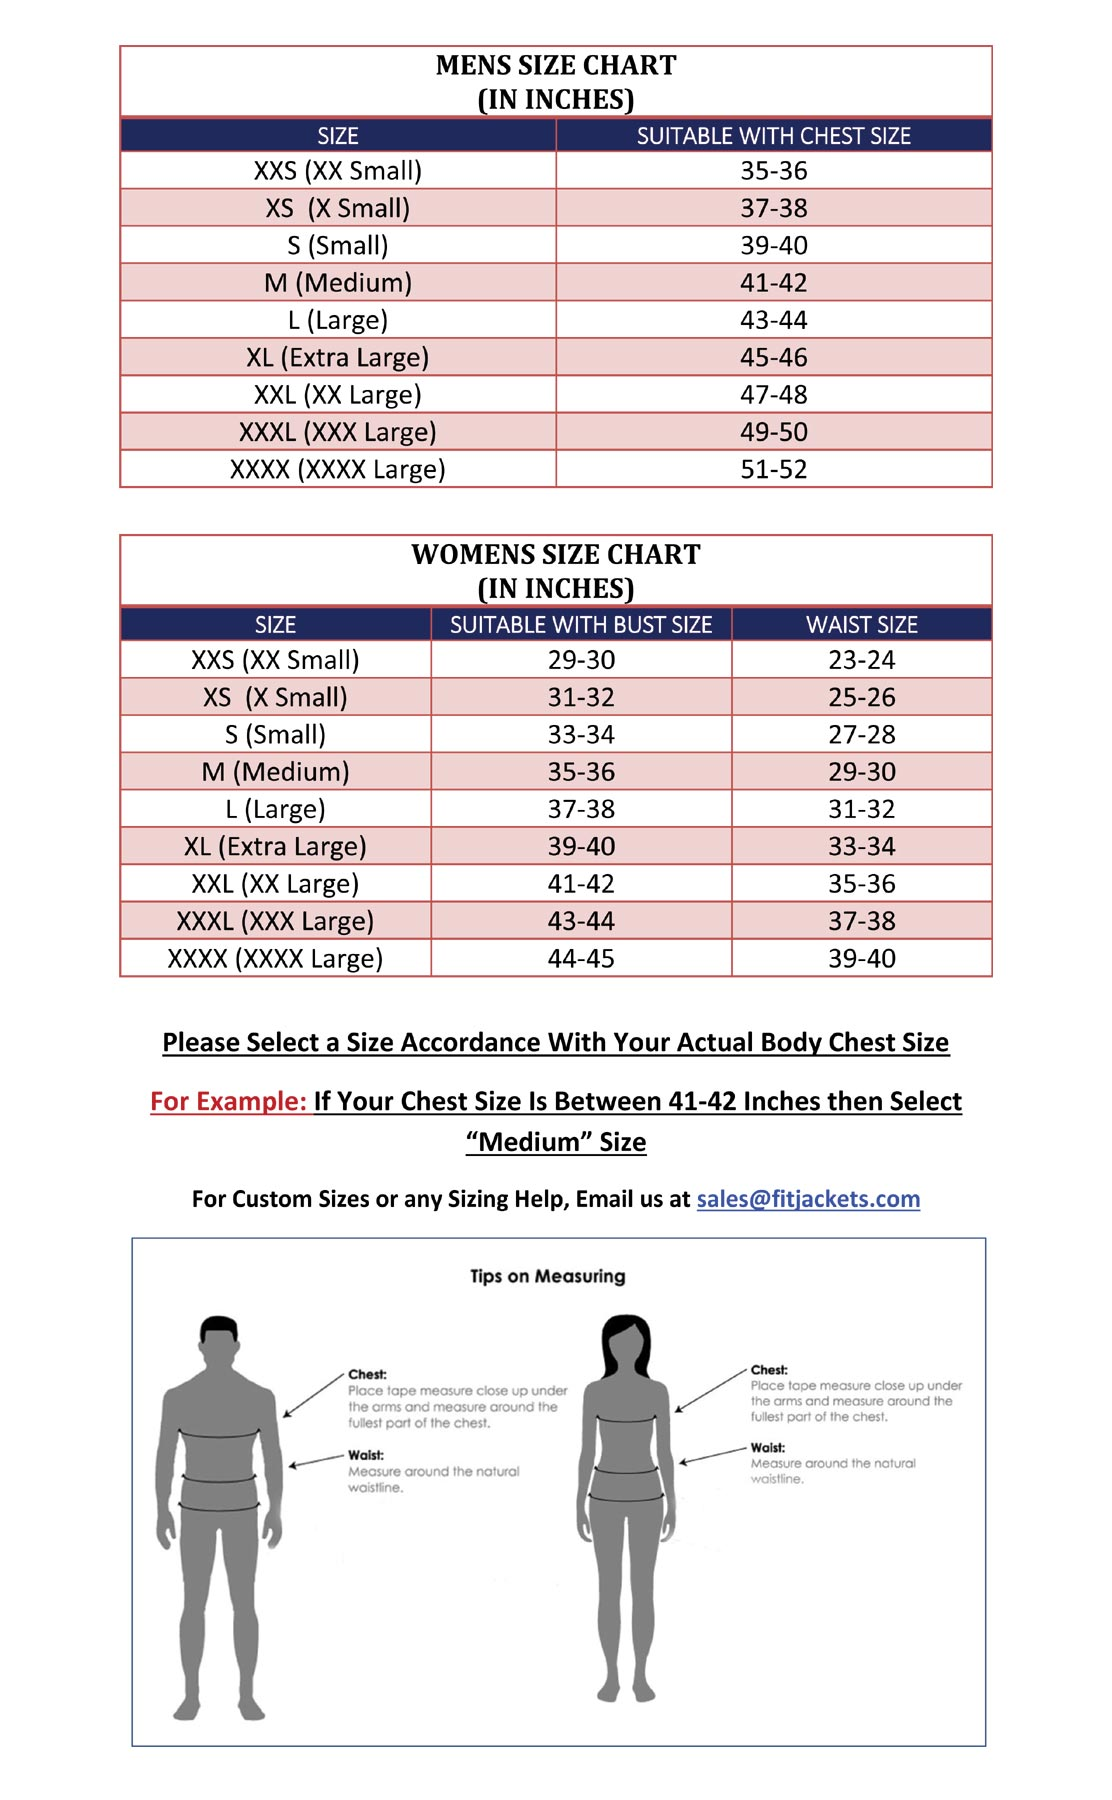 size-chart-new-fitjackets.jpg